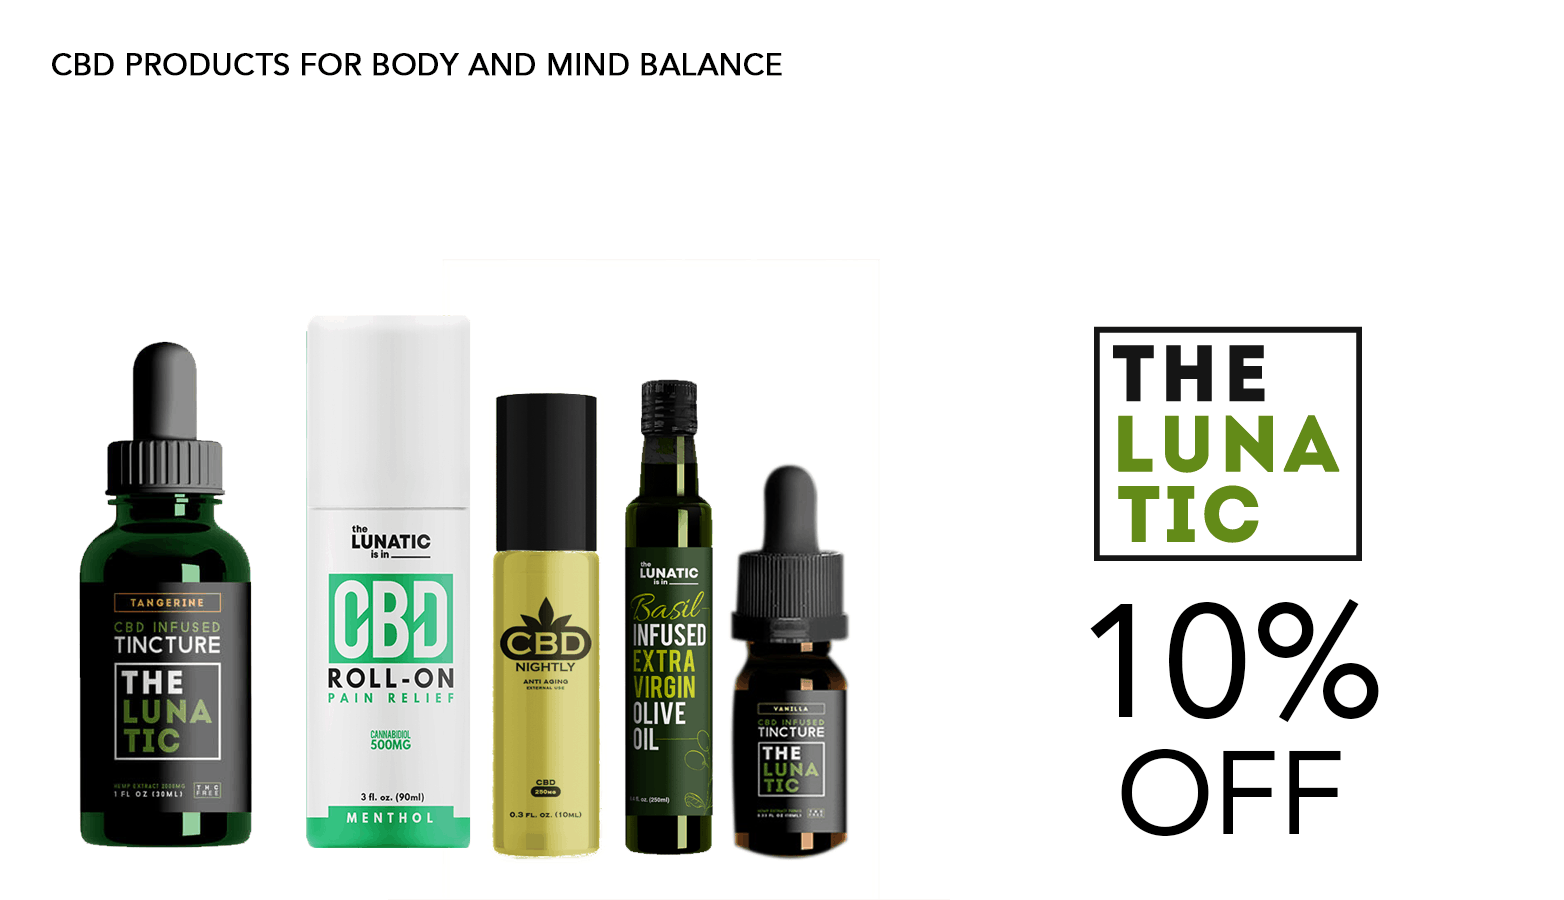 The Lunatic CBD Coupon Code Offer Website